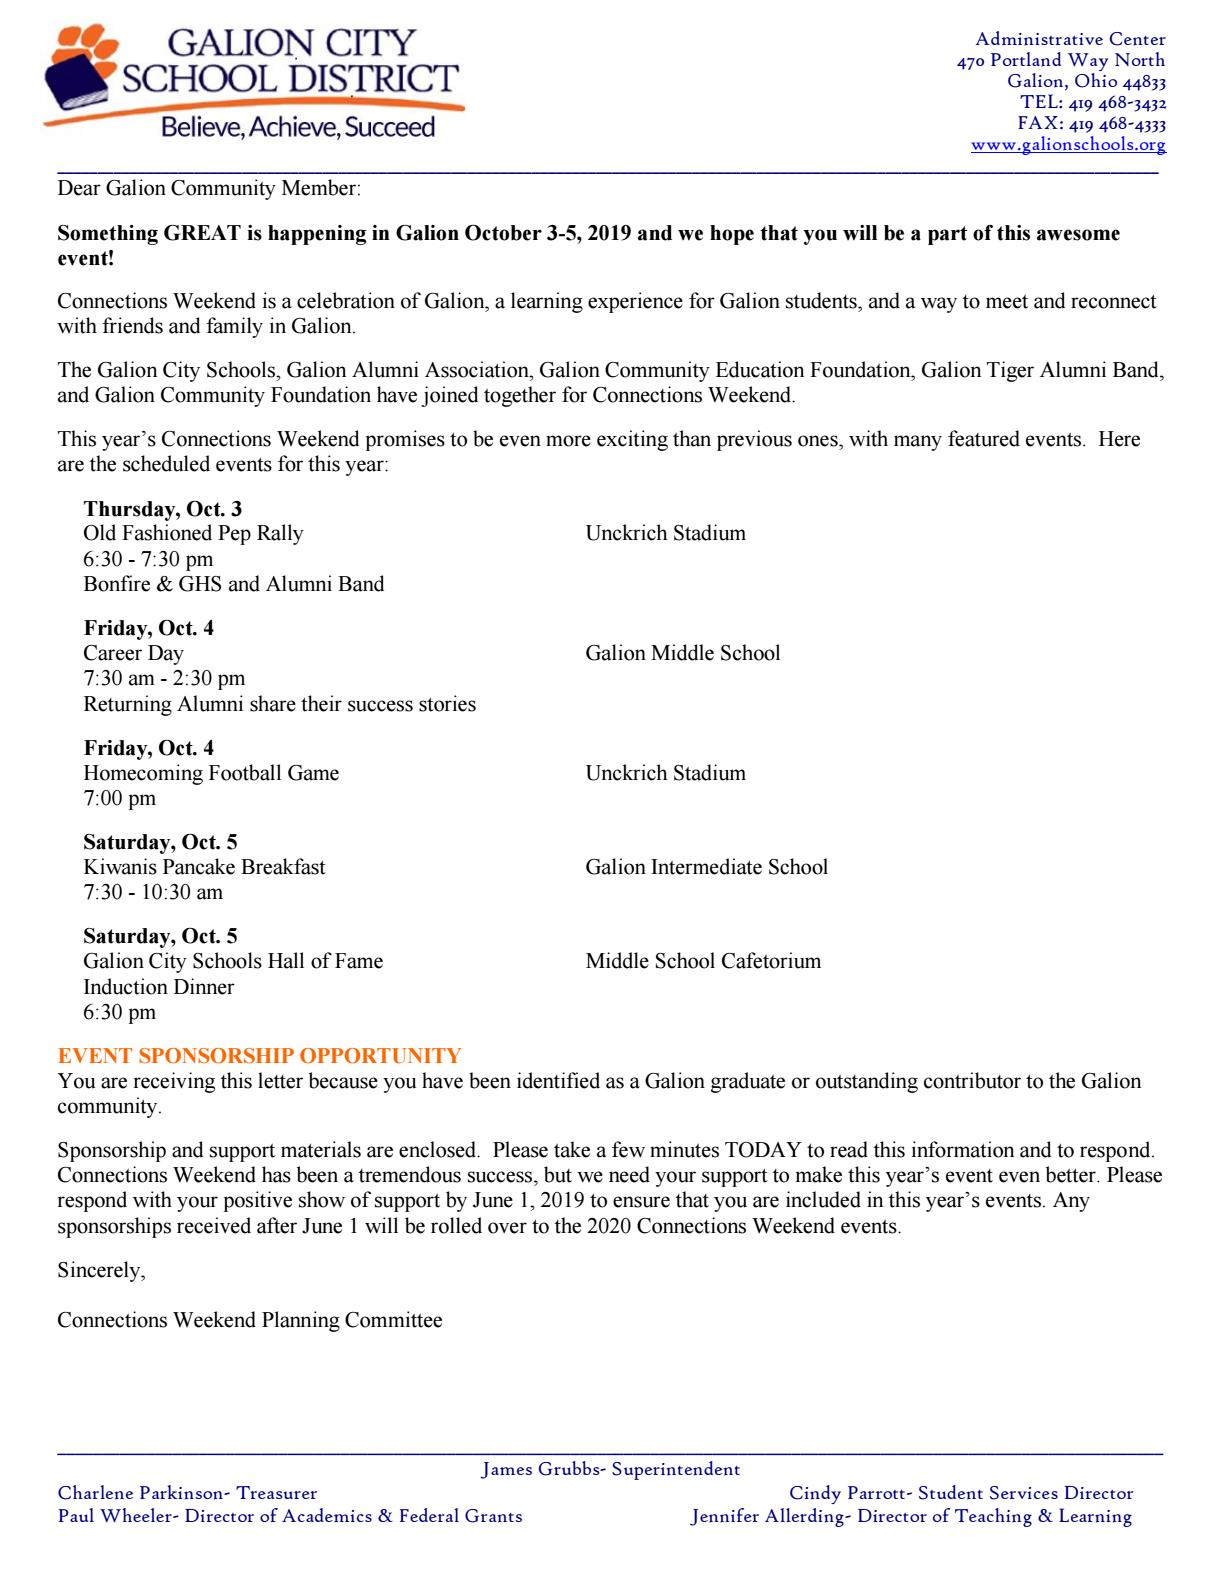 2019 connections sponsor letter  - page 1.jpg